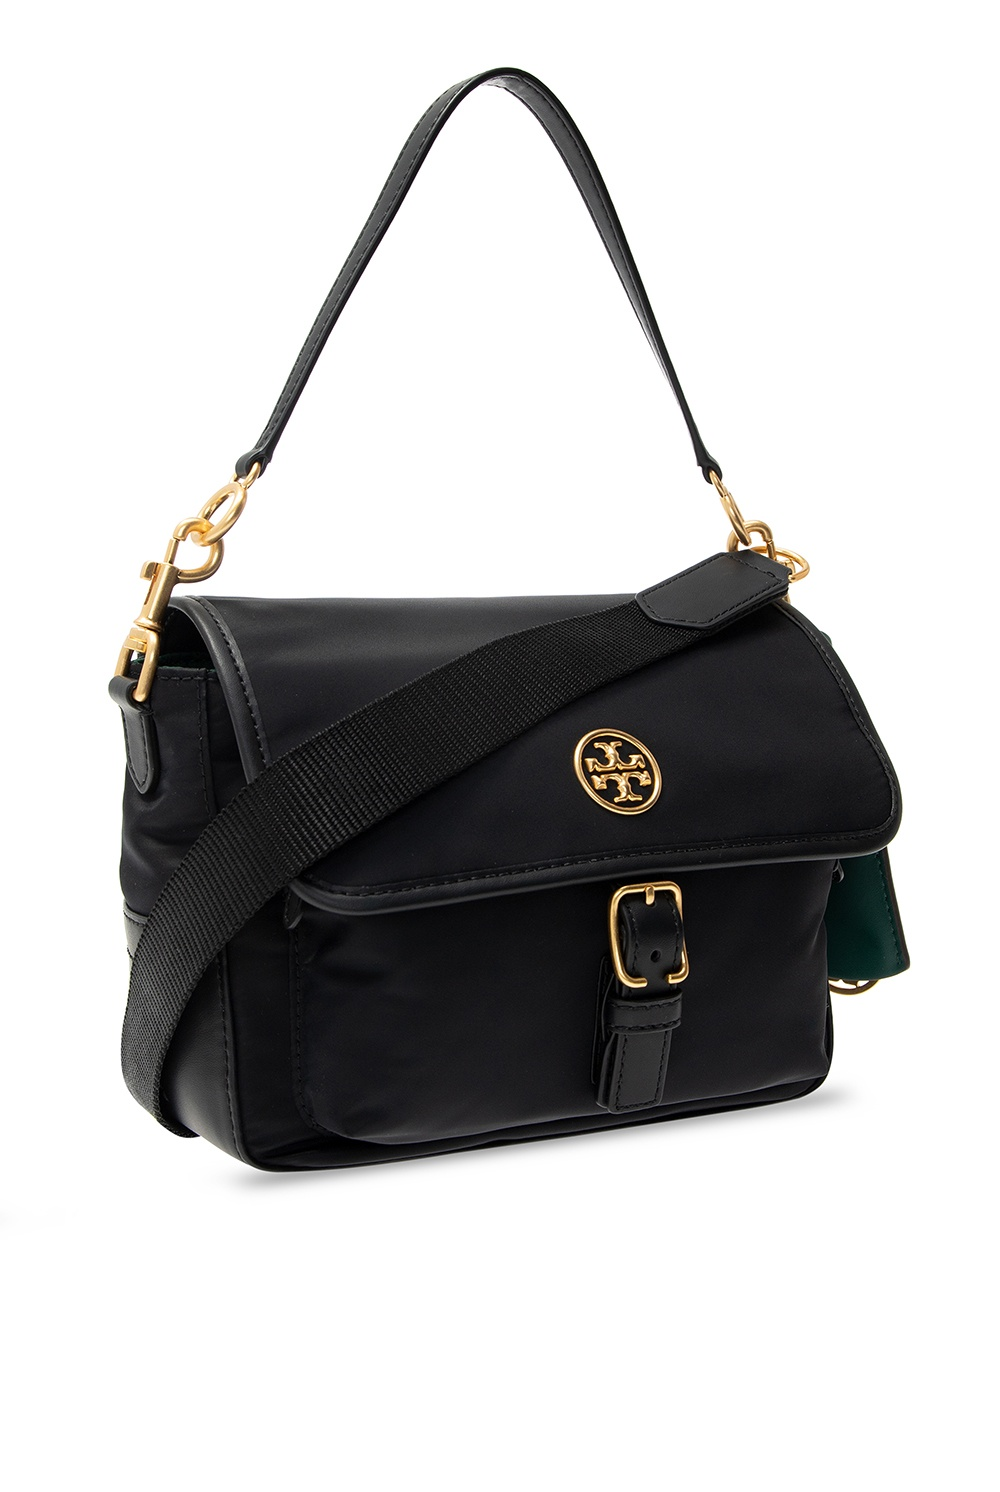 Tory Burch Shoulder bag with logo